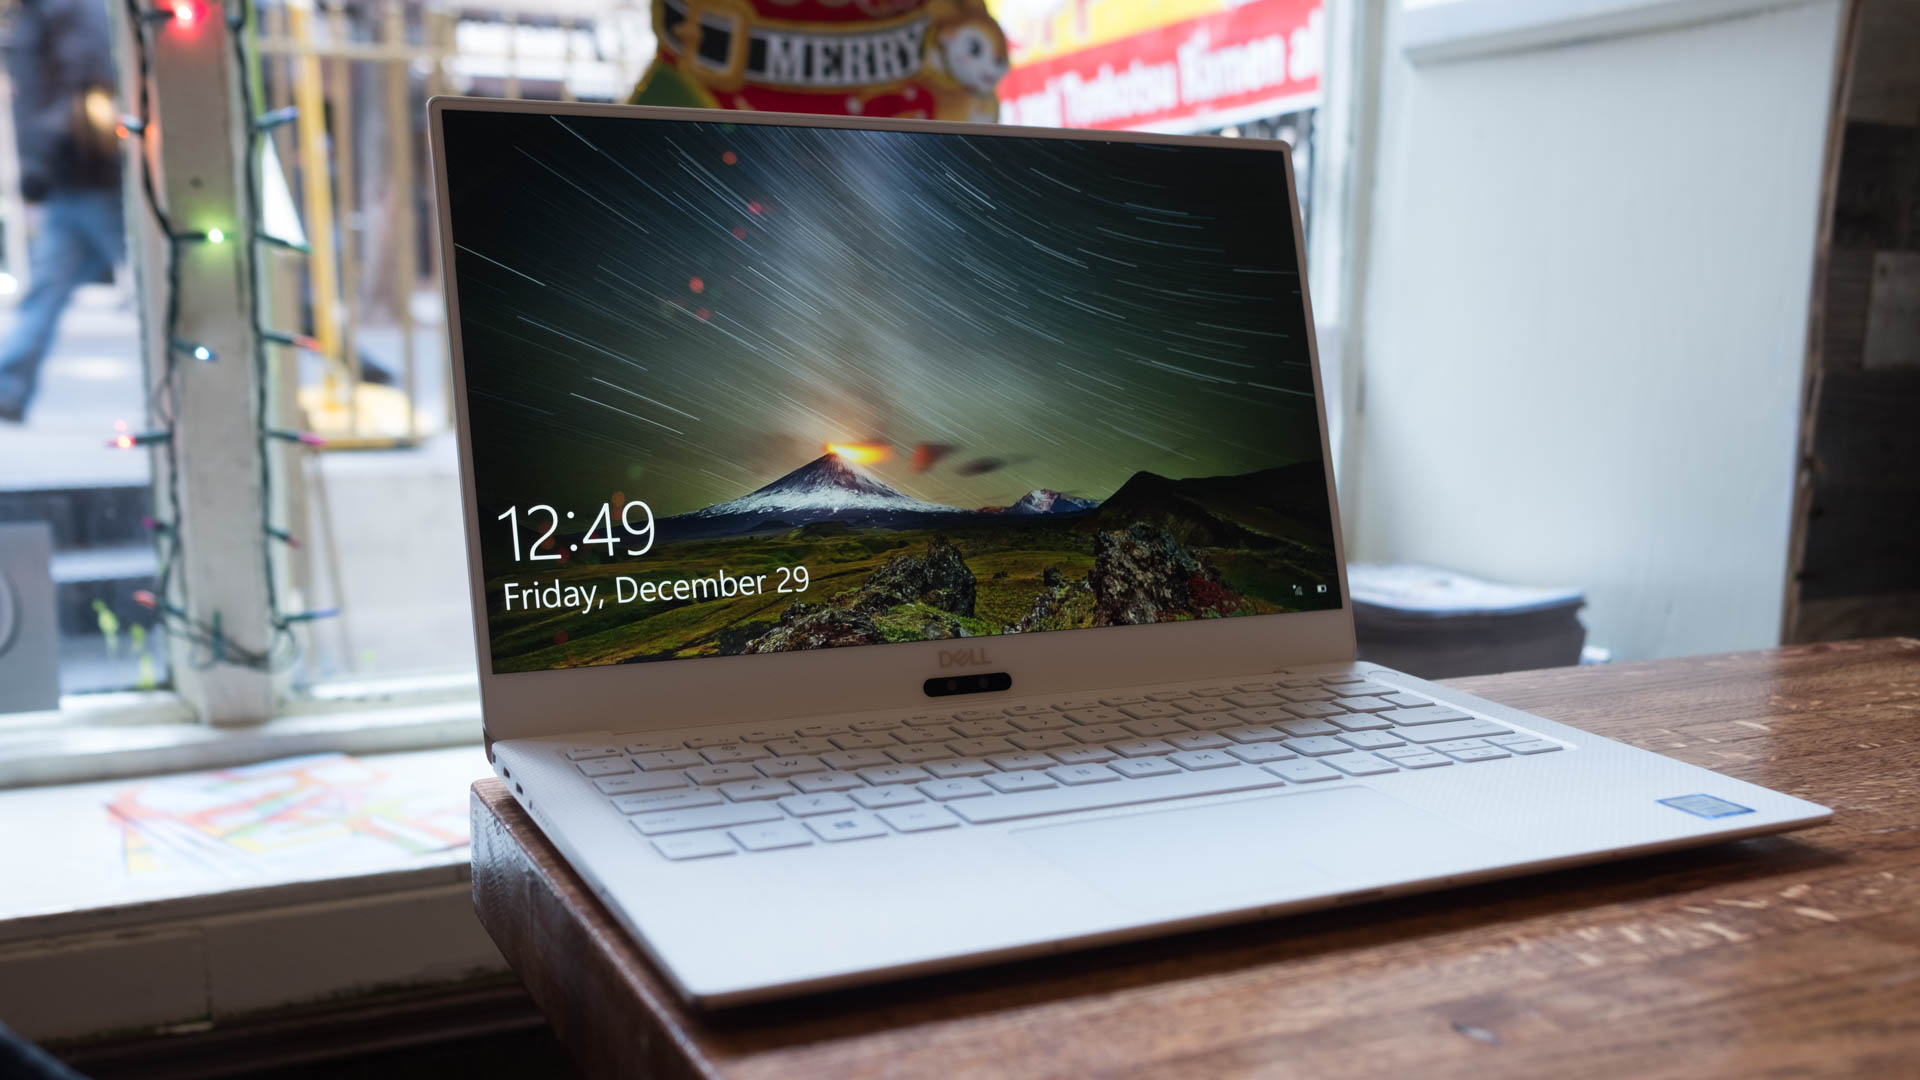 Top tips for extending the battery life of your laptop